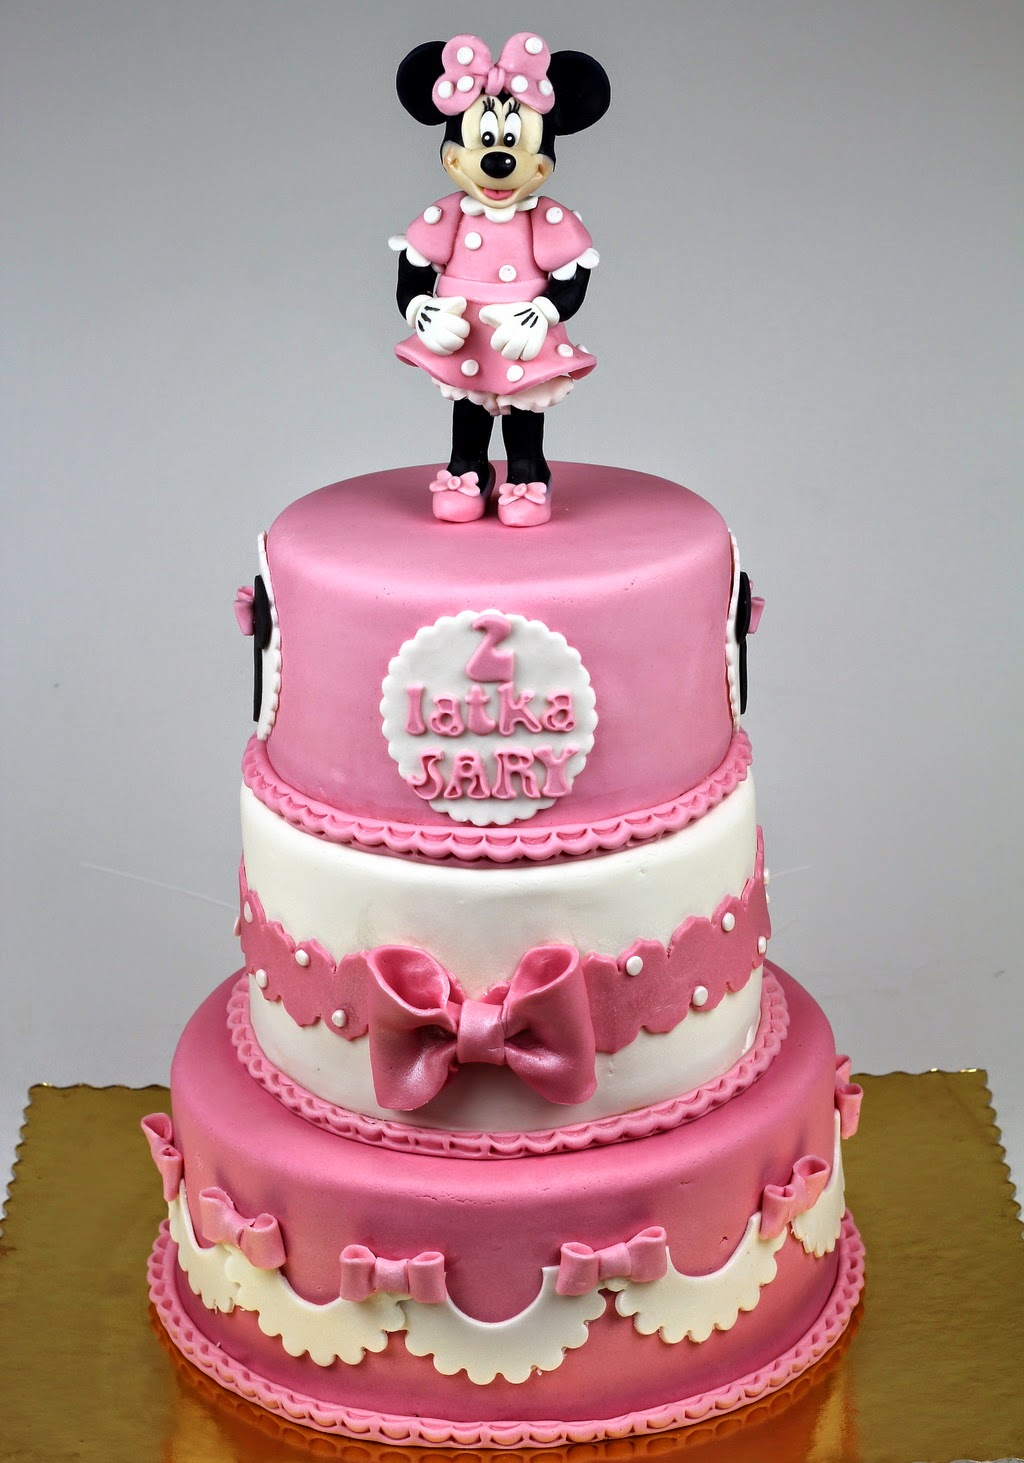 Birthday Cakes Minnie Mouse Childrens Birthday Cakes in London